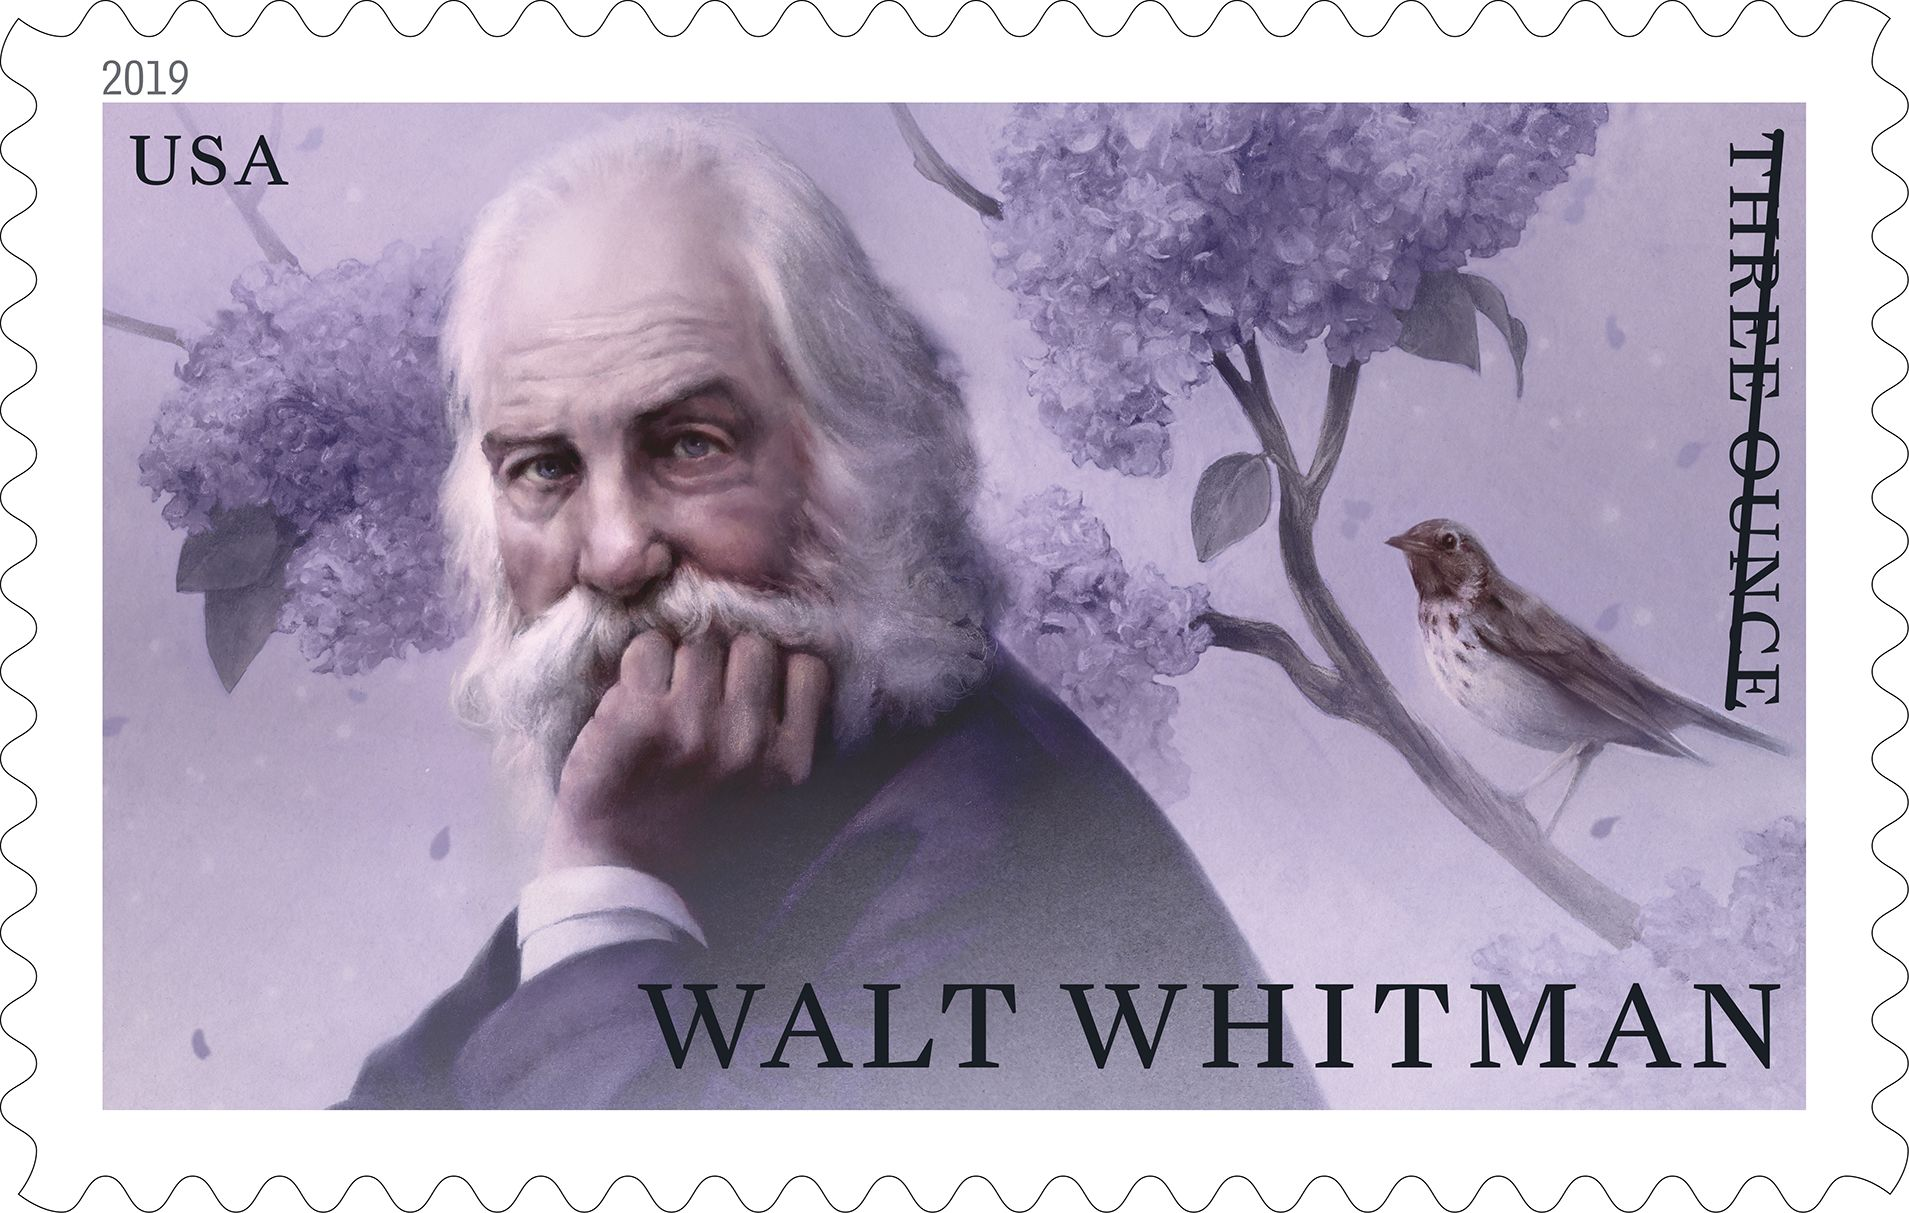 Usps Christmas Stamps 2019.Usps New Stamp Issues 2019 On Stampnewsnow Com